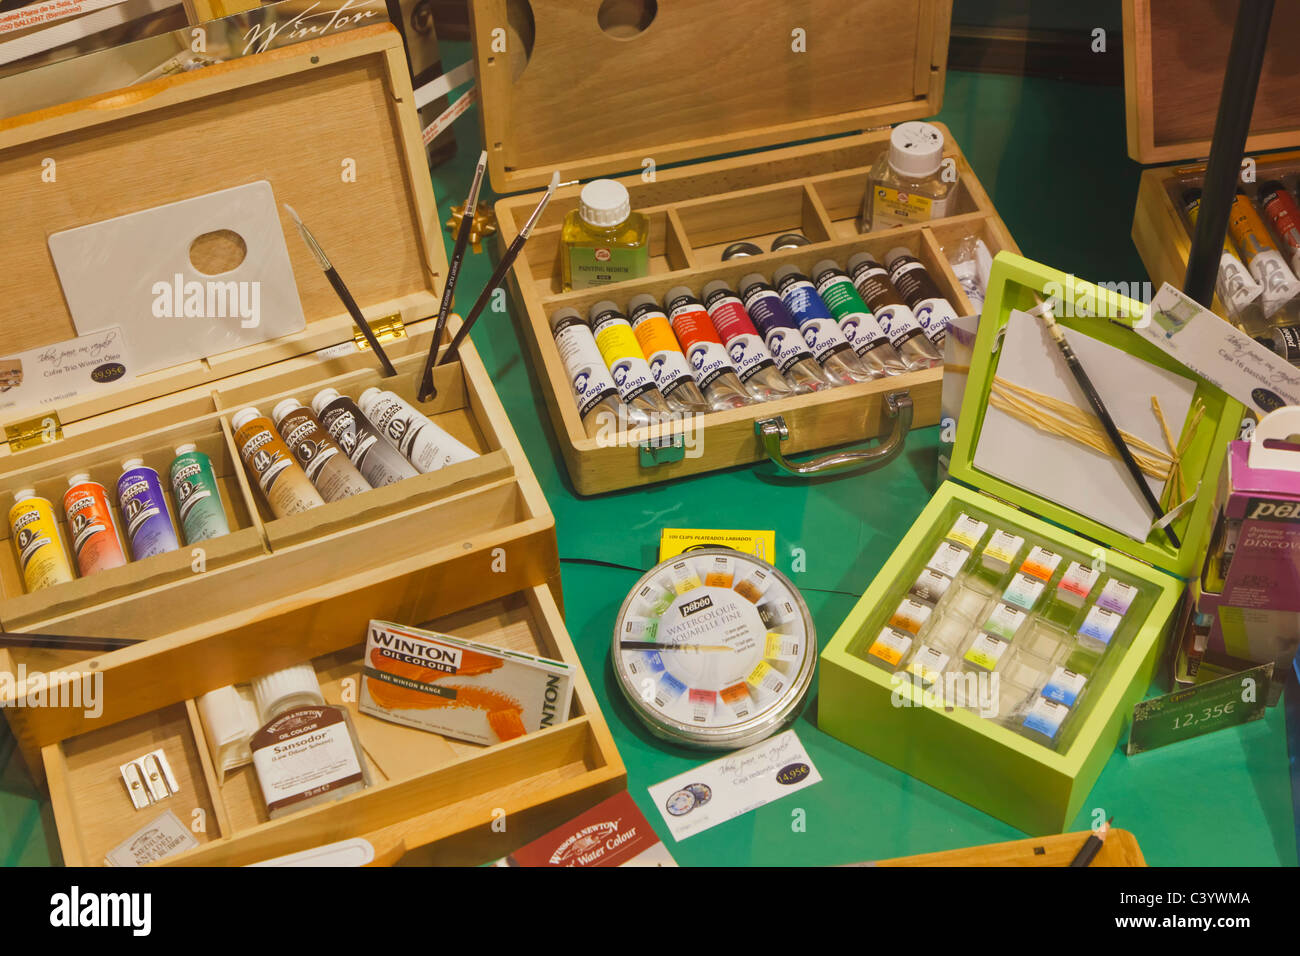 Artists supplies in shop window. Water colours, oil paints, brushes, palettes. - Stock Image